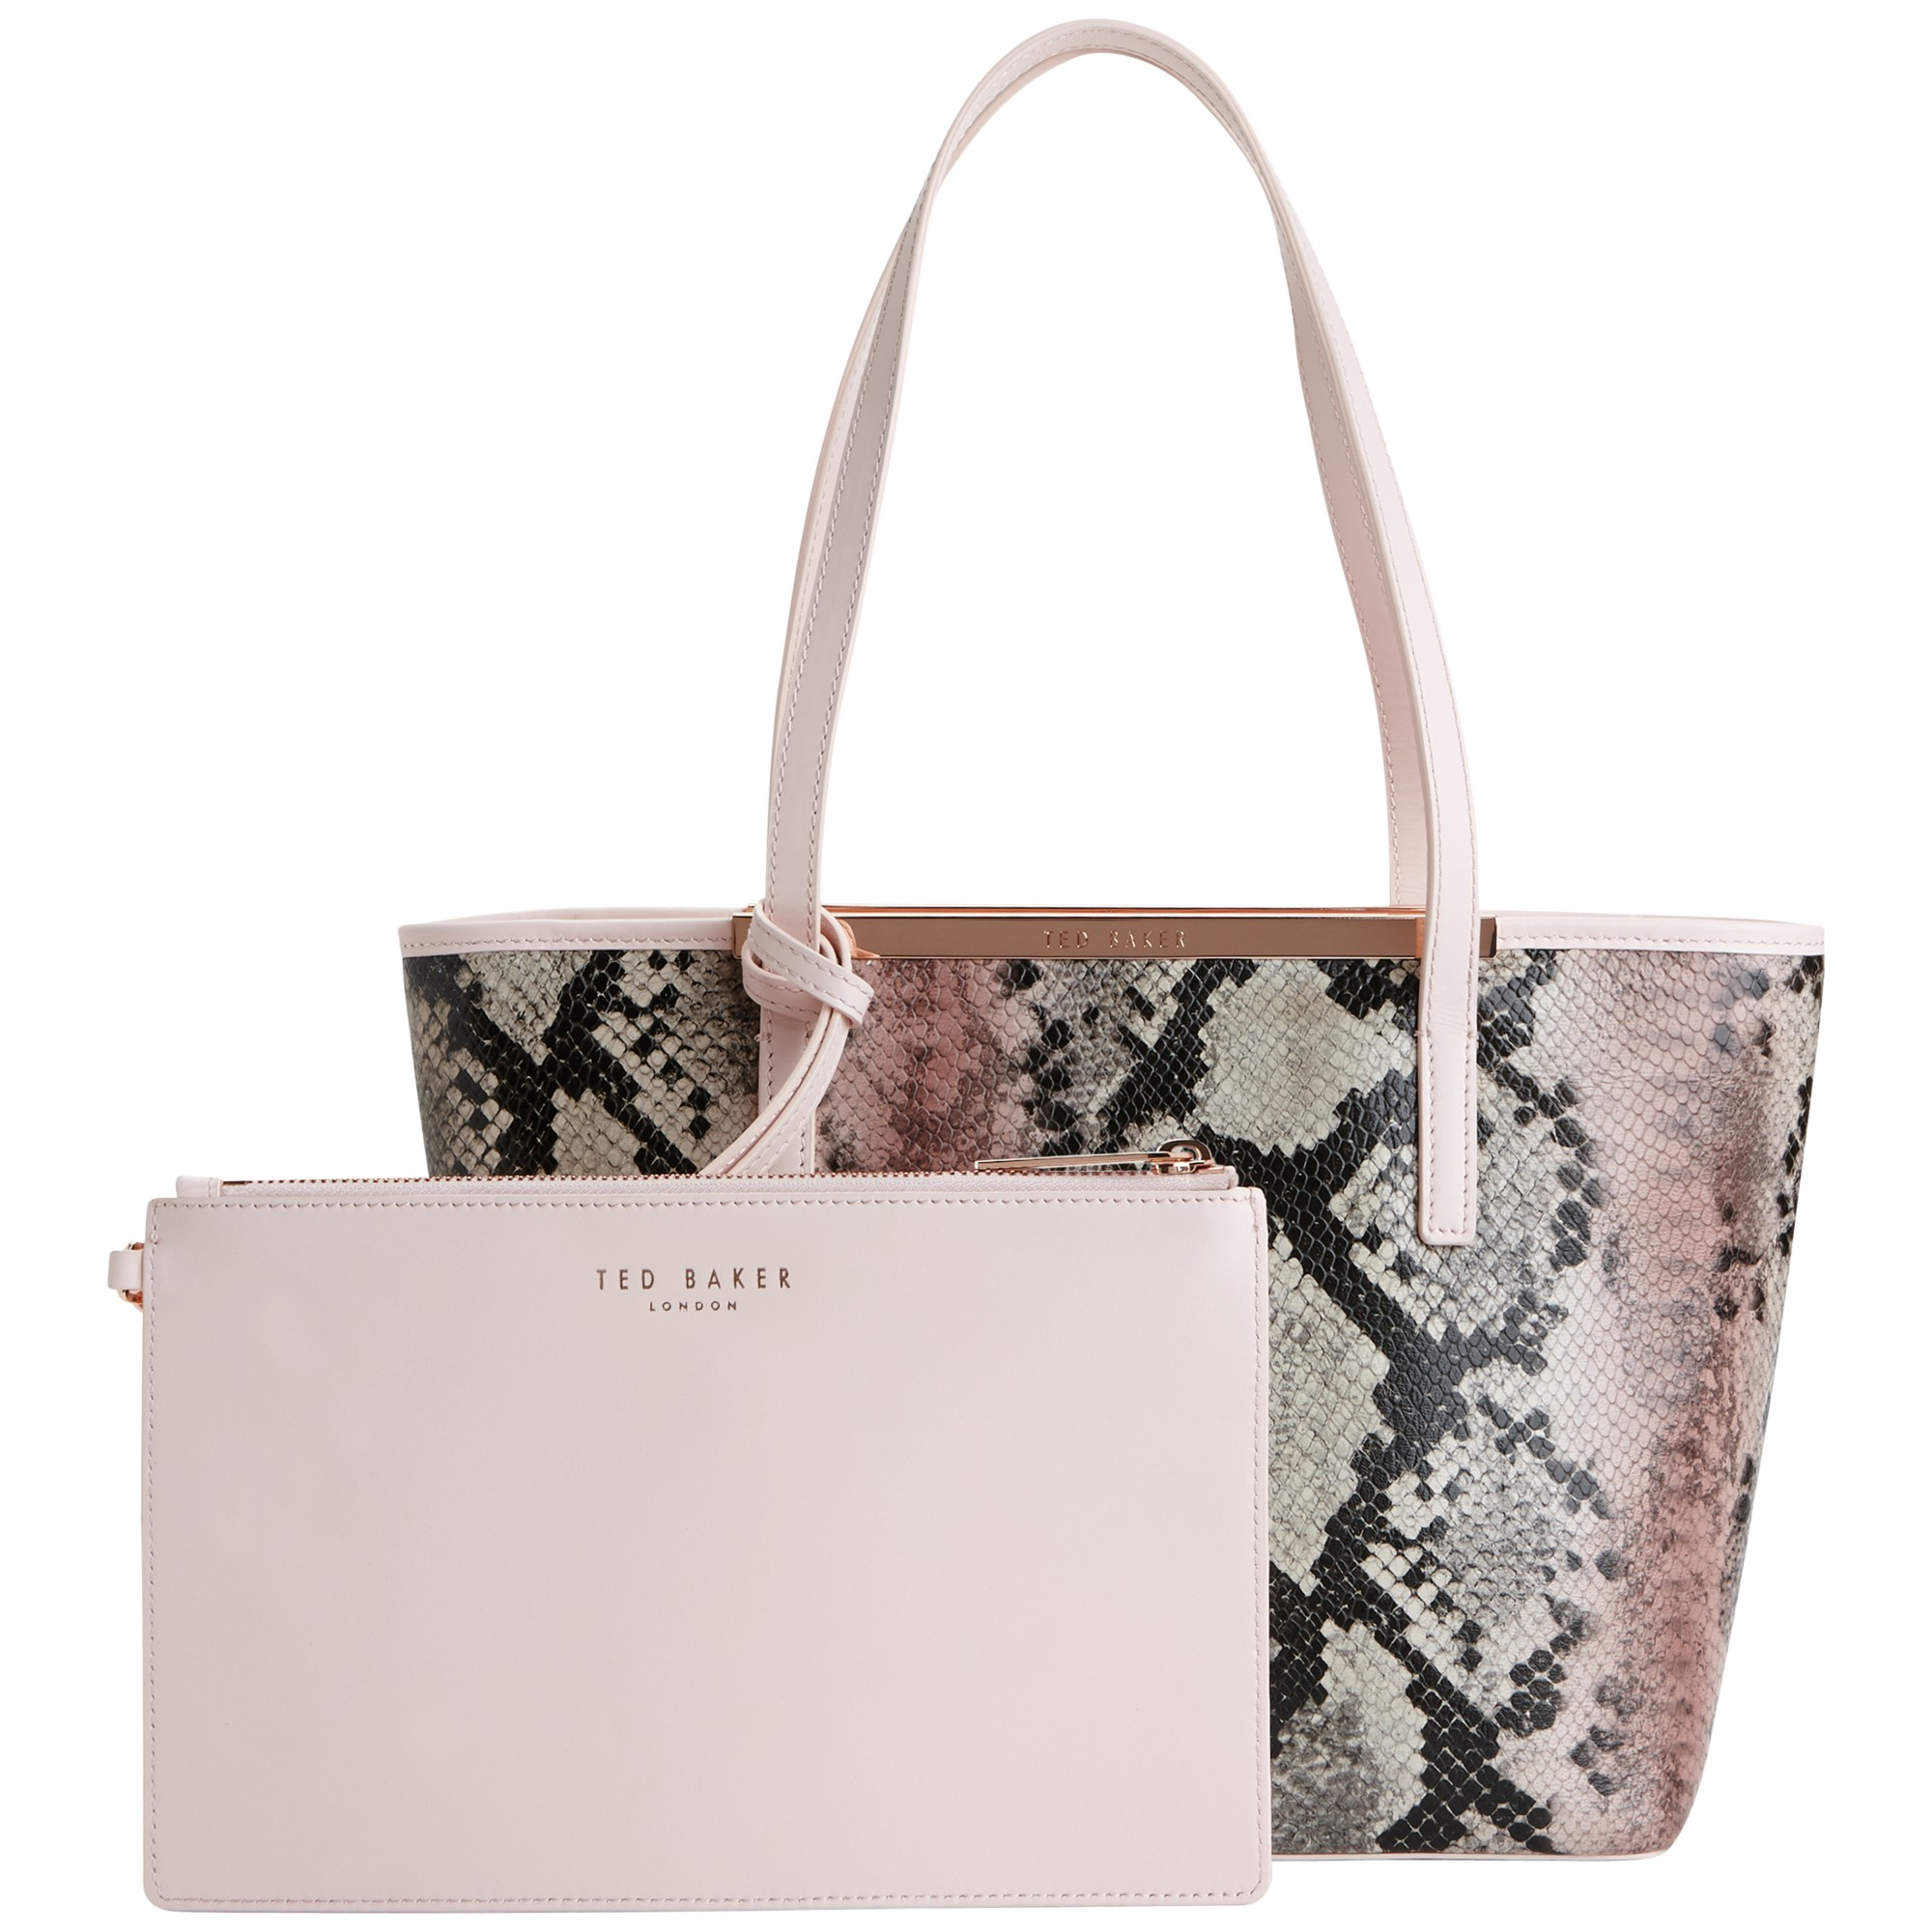 5a65f017223171 Ted Baker Nesa Crosshatch Small Leather Shopper Bag in Pink - Lyst